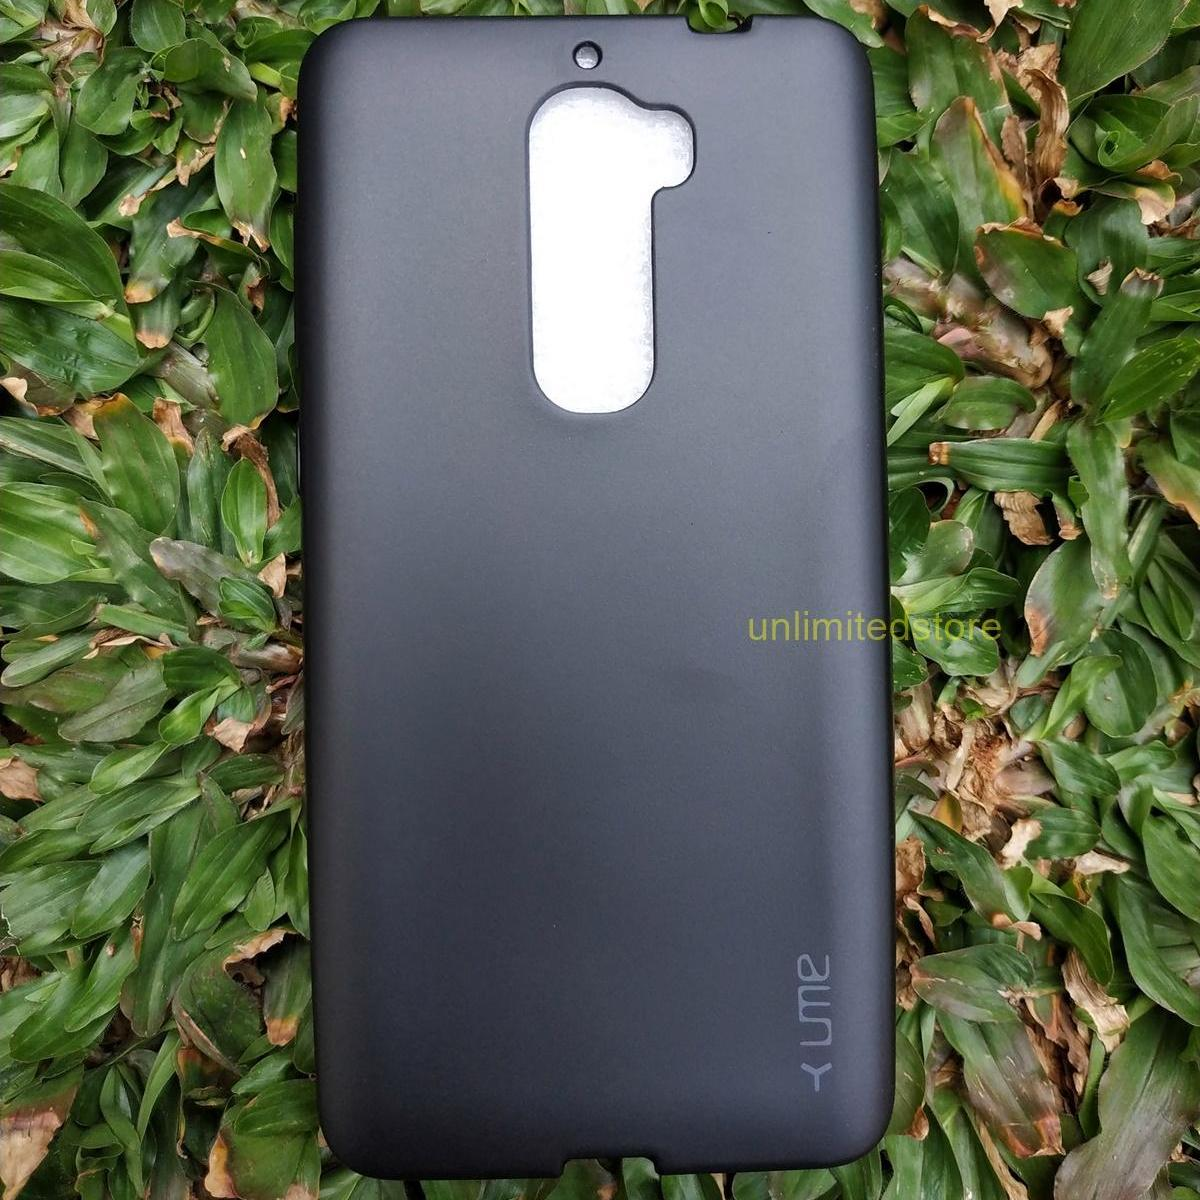 Jelly Case Ume Emerald Doff Color Softcase untuk Coolpad Cool Dual R116 Casing Ultra thin Soft